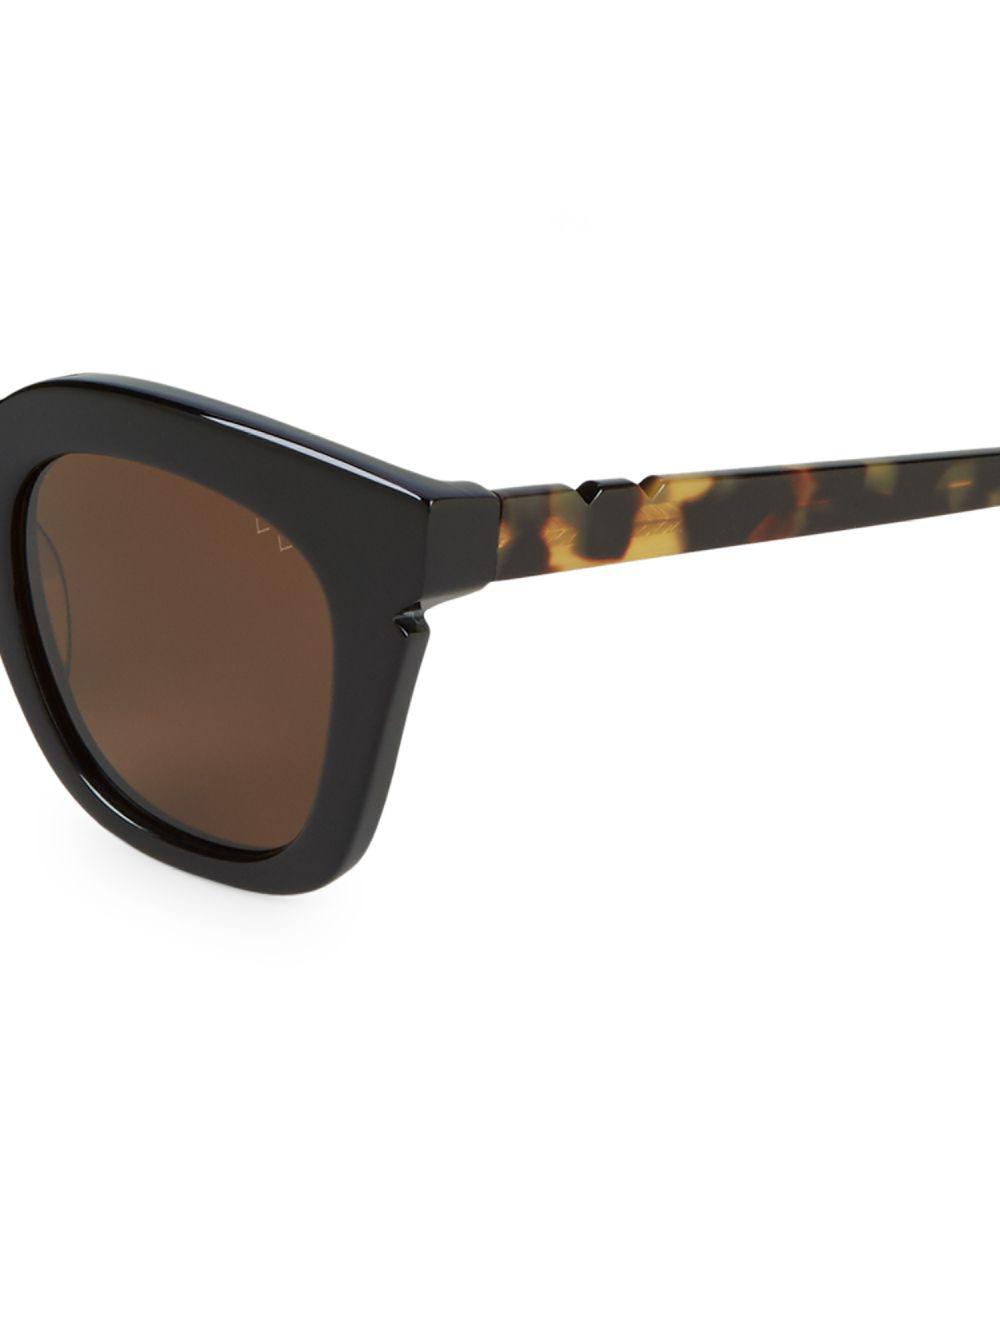 29f837d9ca Pared Eyewear - Black Classic 44mm Butterfly Sunglasses - Lyst. View  fullscreen